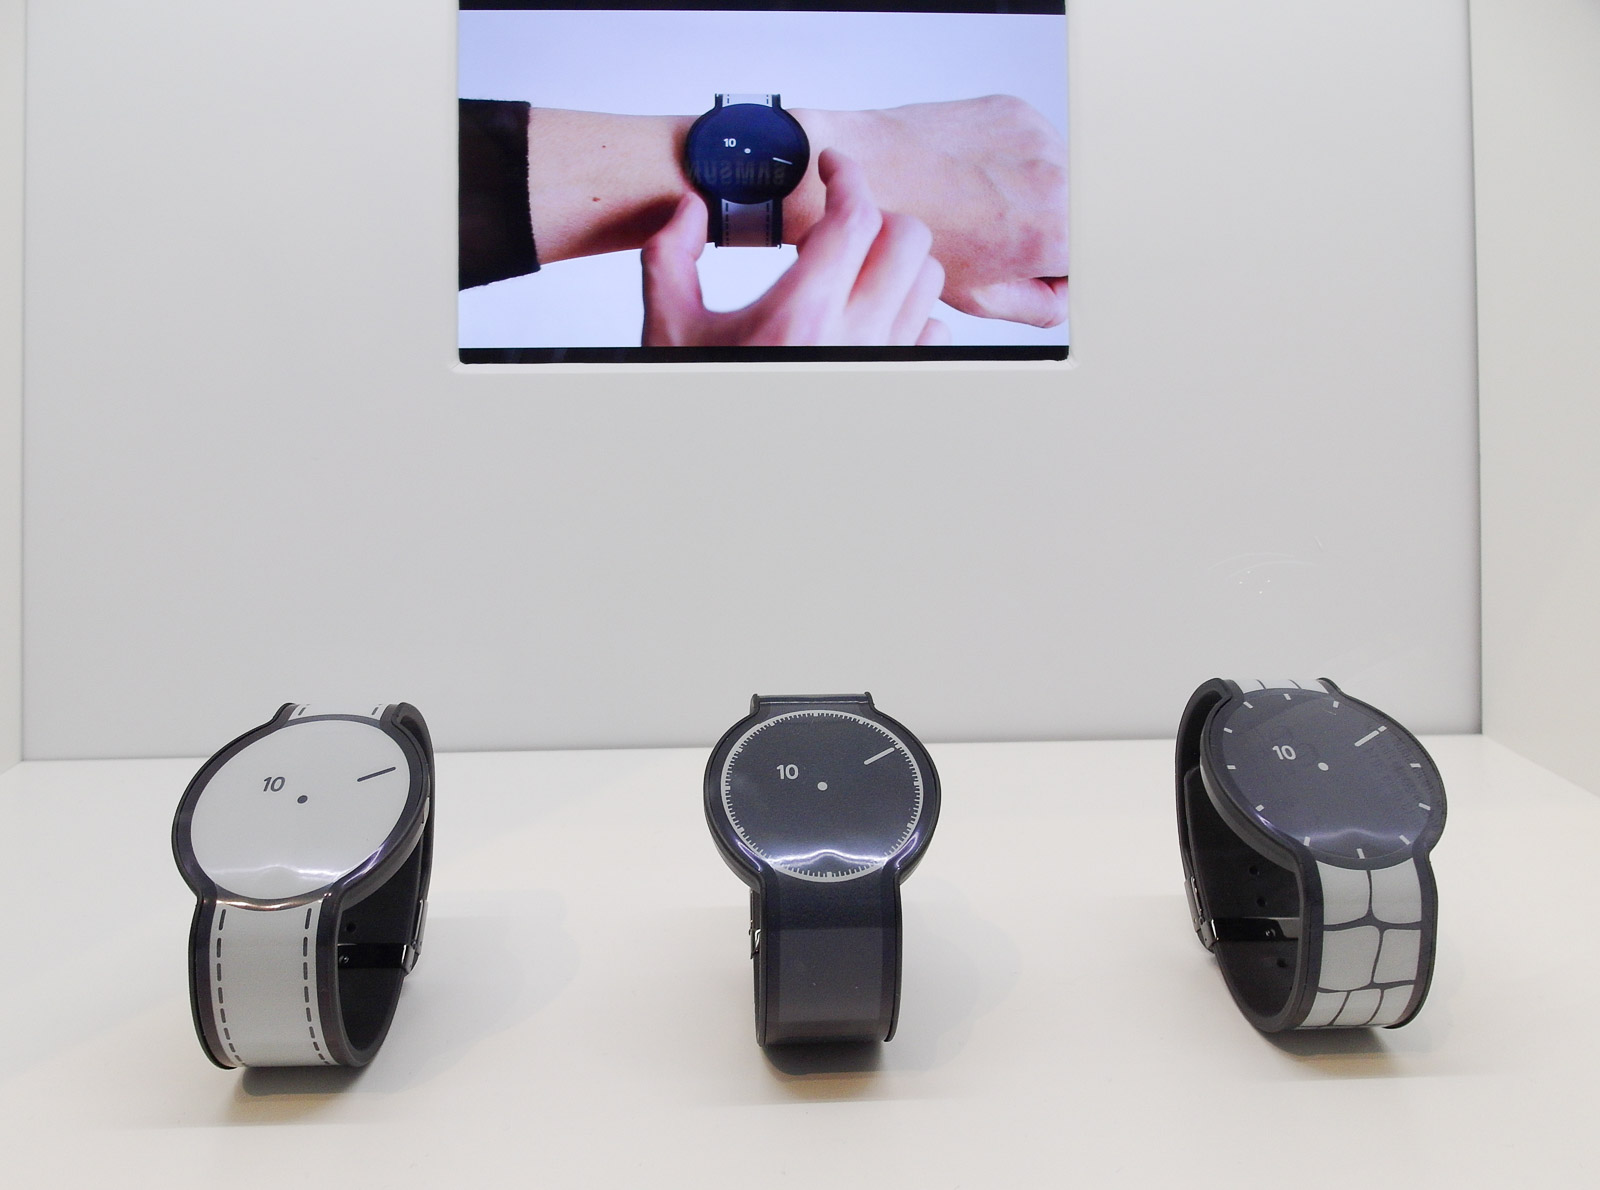 <h1>Sony E-Ink Smartwatch Prototype</h1> <h2>IFA 2015 SmartHomeConsult Report</h2>